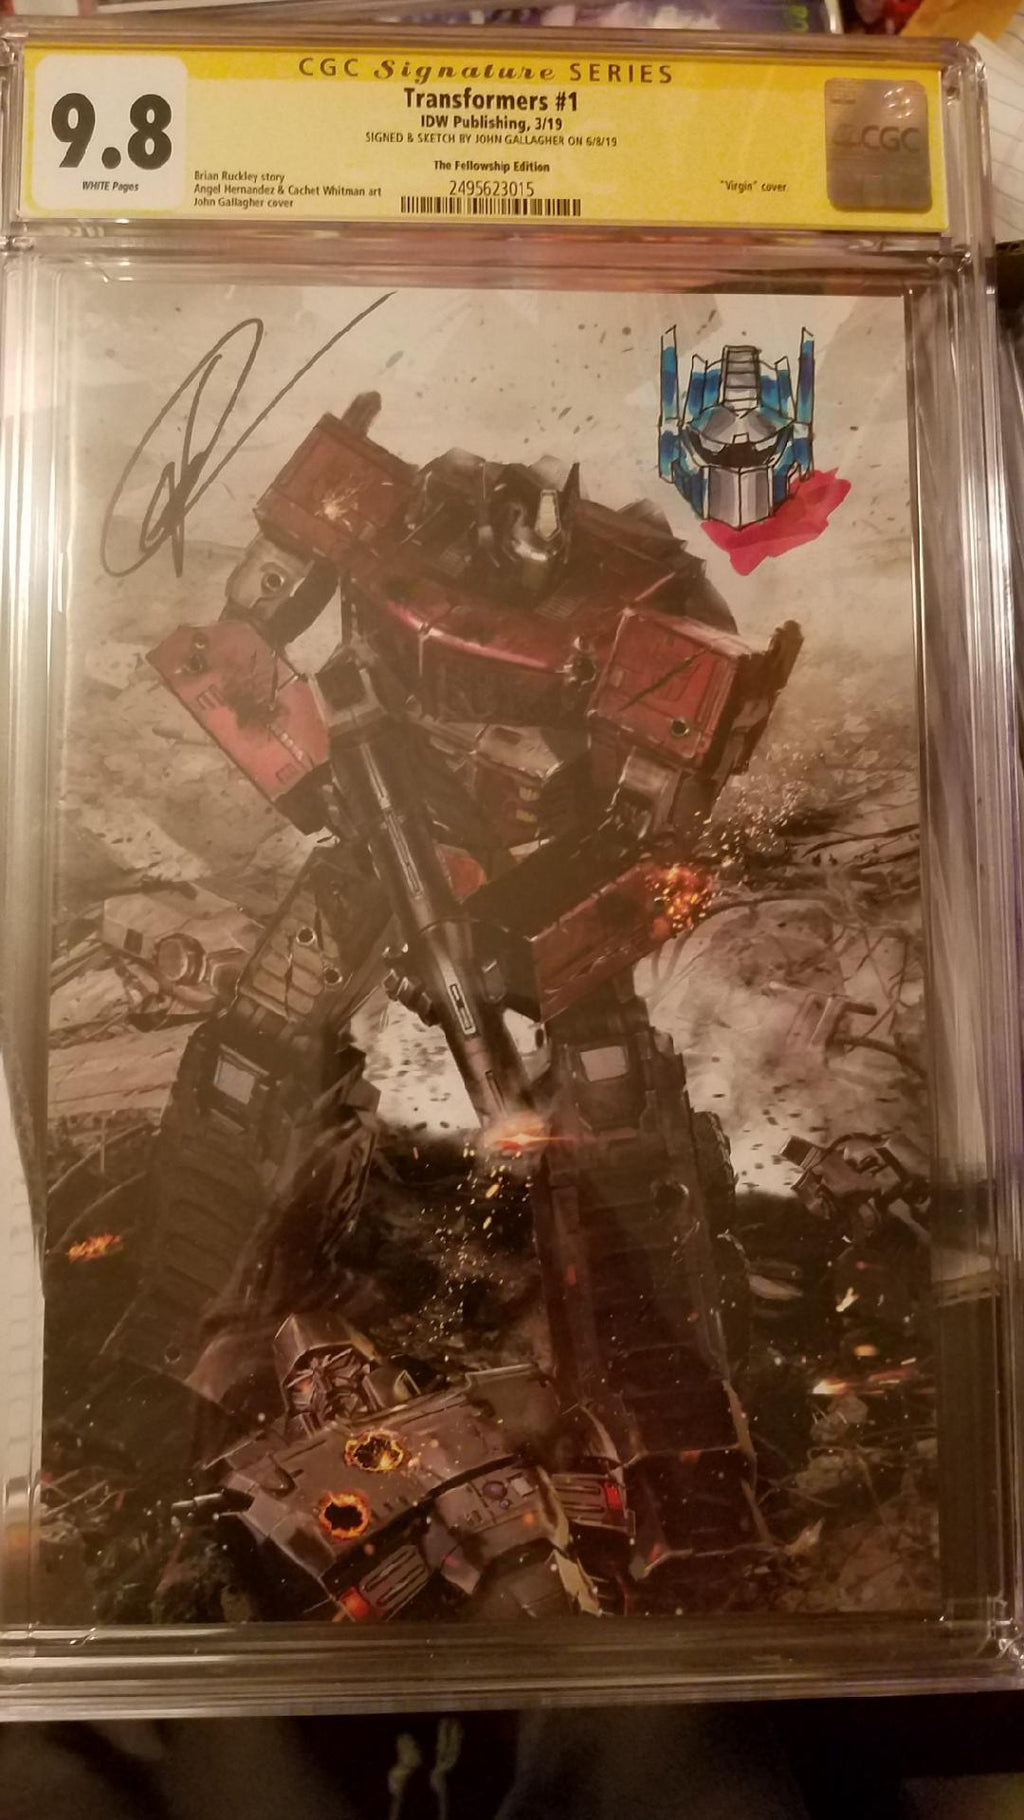 TRANSFORMERS #1 JOHN GALLAGER 9.8 CGC SS REMARK LTD 600